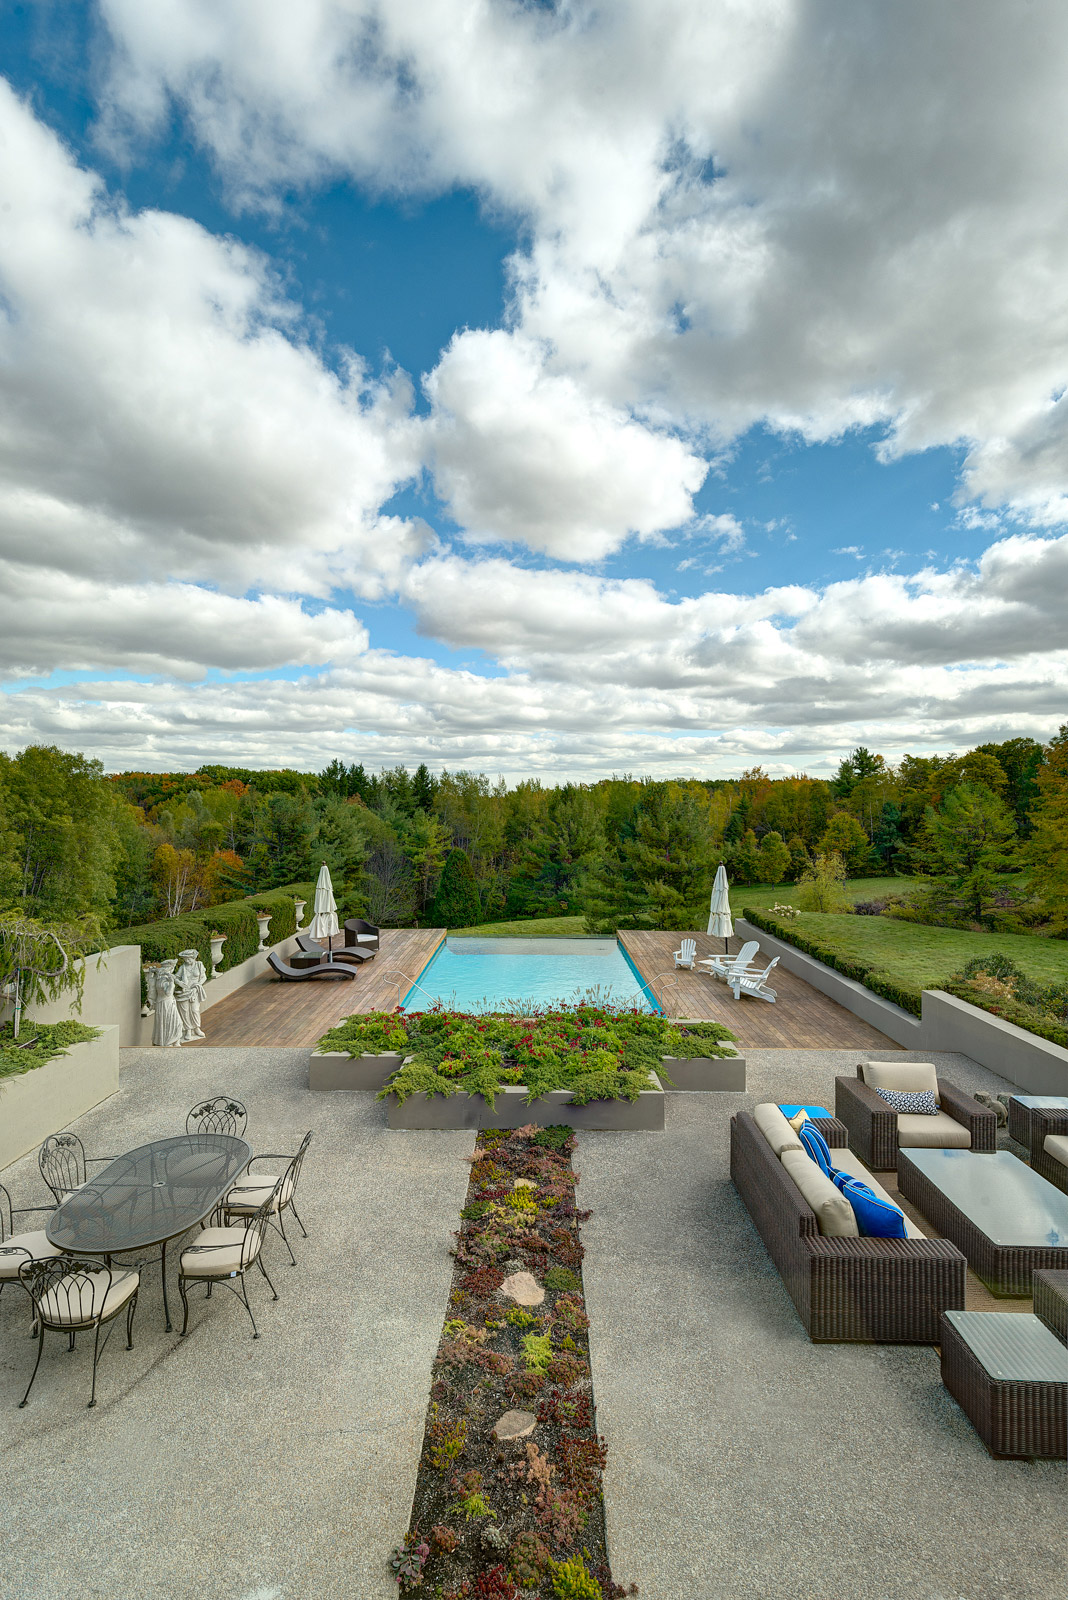 Toronto area home with naturalized local landscaping and large deck area with seating and dining.  Kebony pool deck